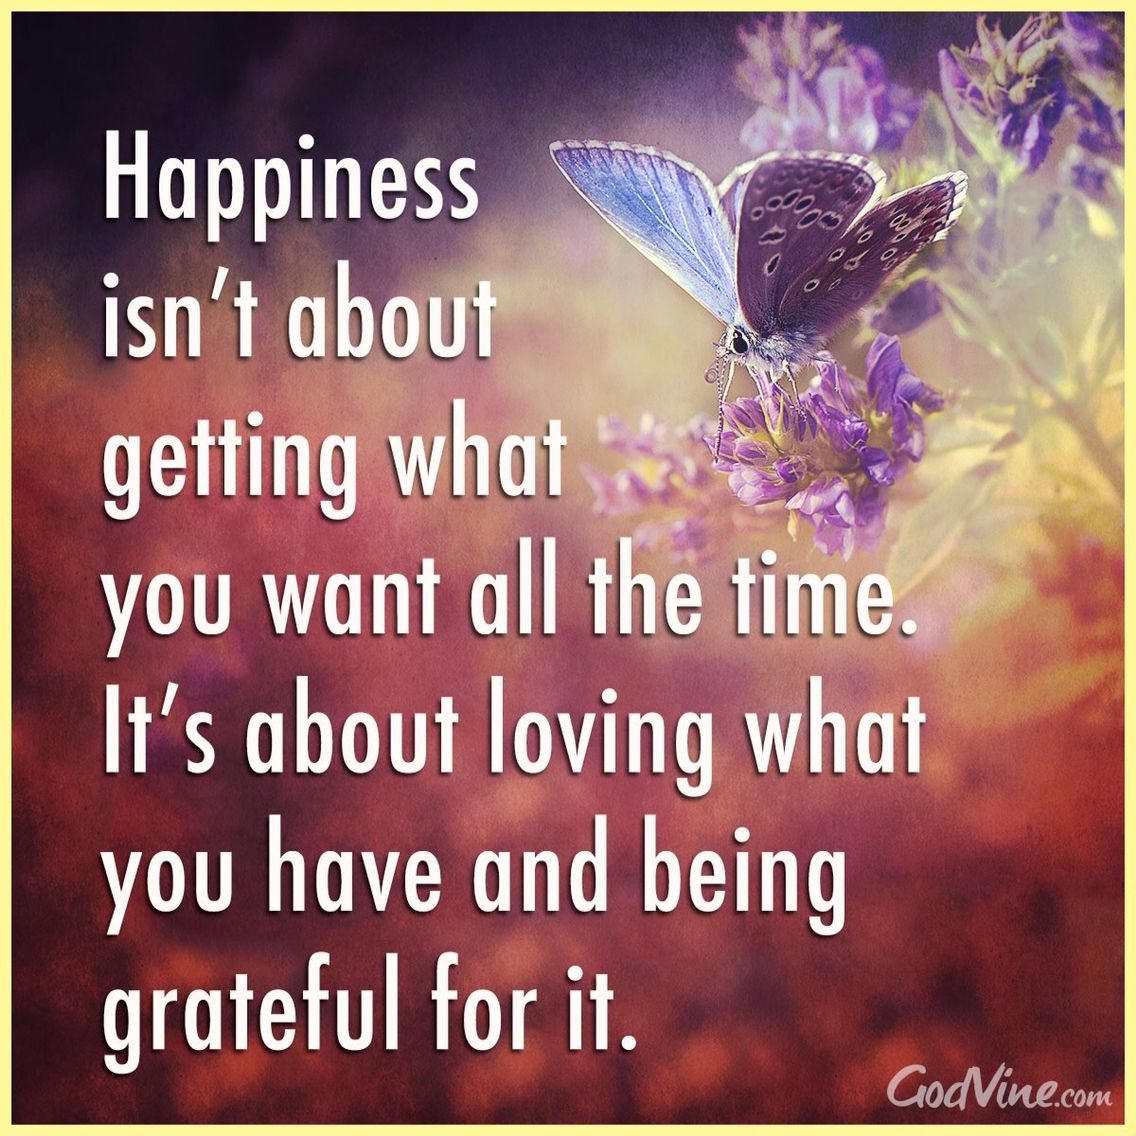 Inspirational Quotes On Happiness And Life Happiness  Saying Phrases  Pinterest  Happiness